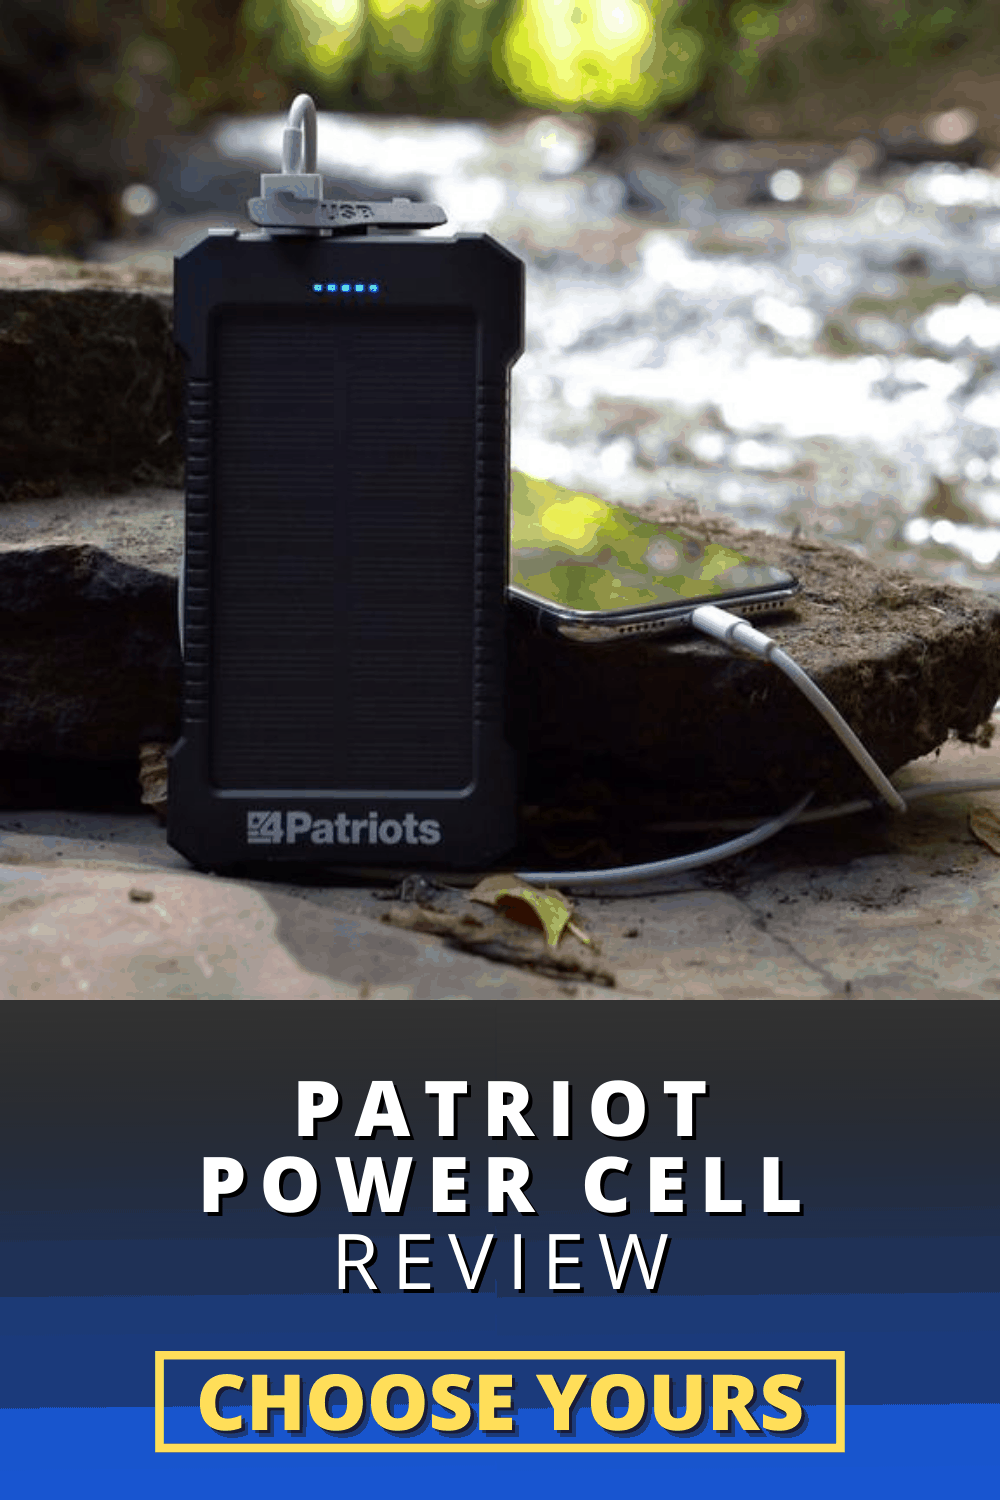 Patriot Power Cell Review